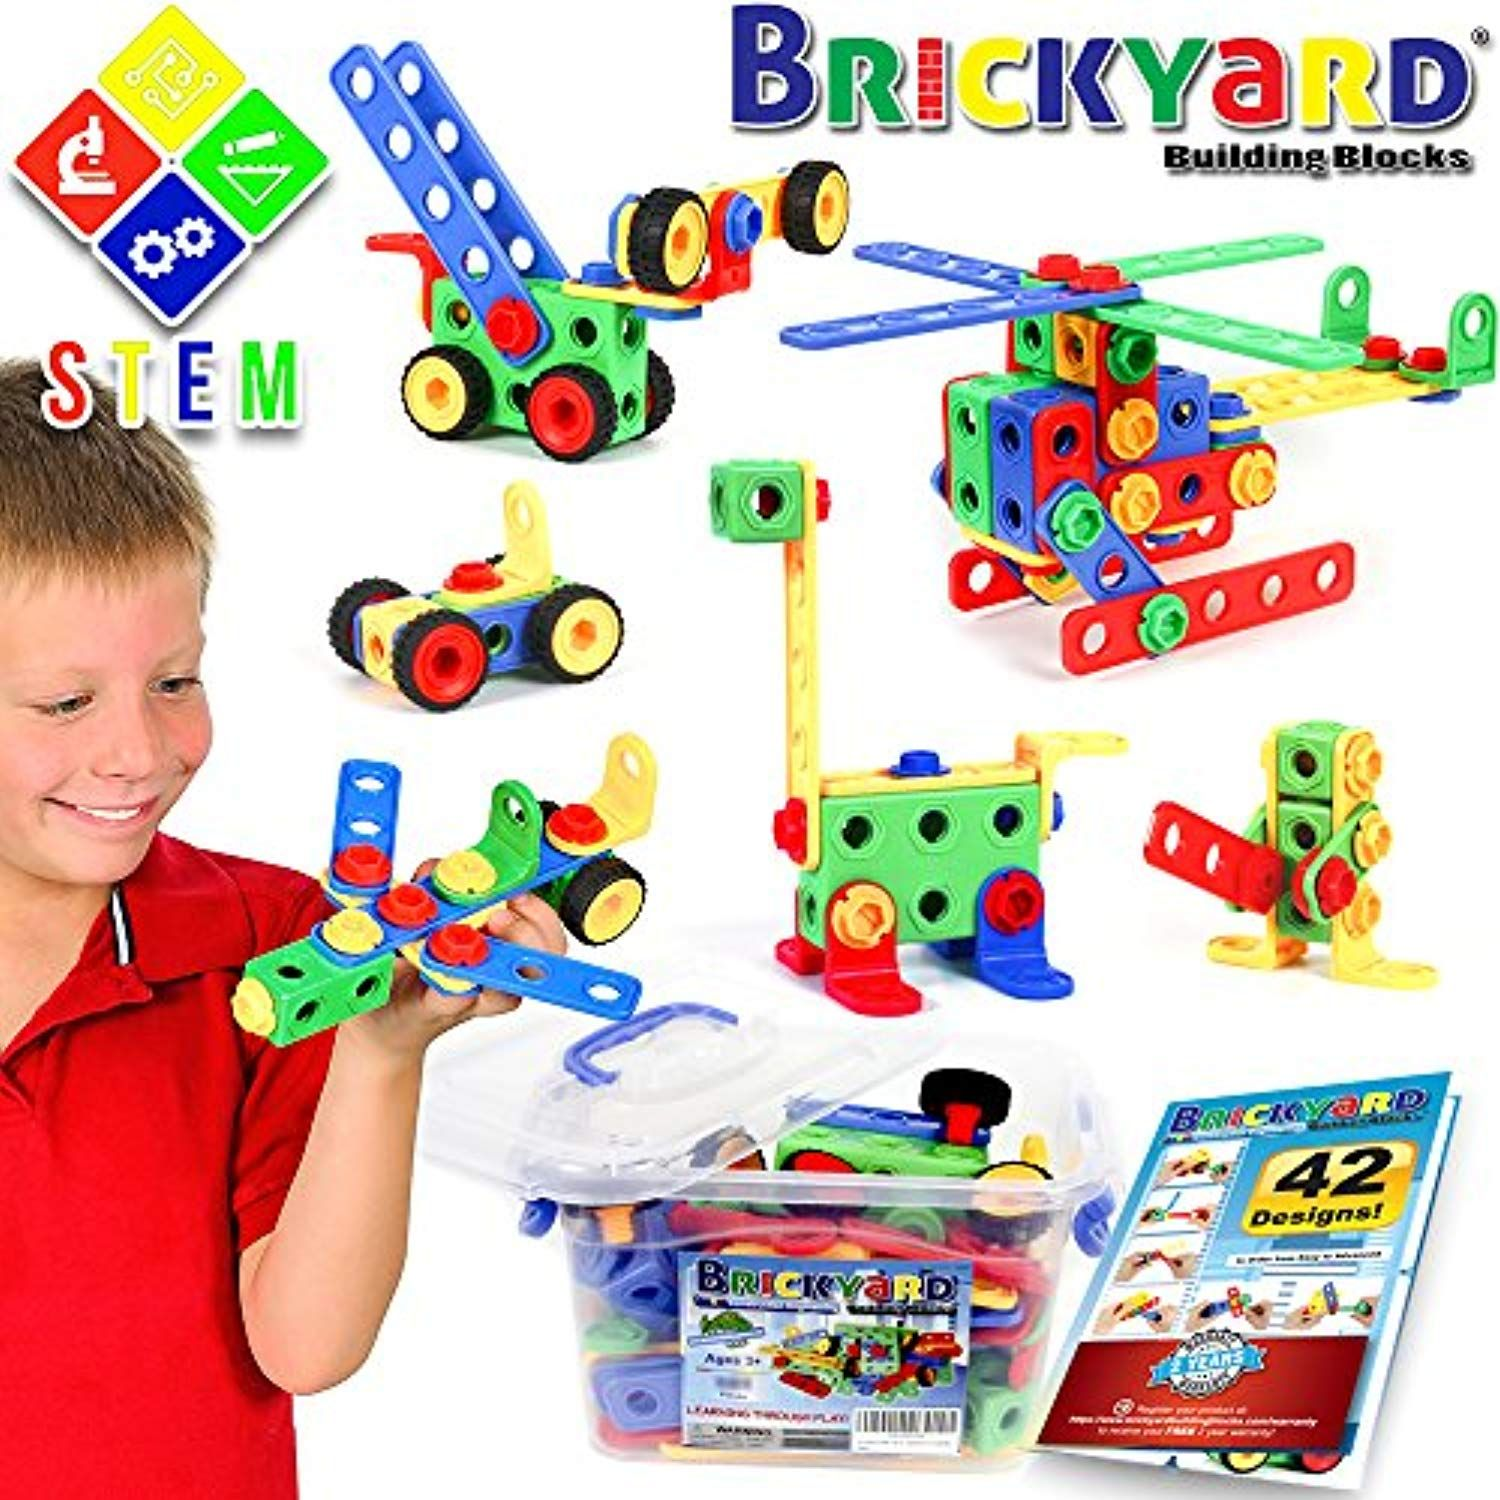 163 Piece Stem Toys Kit Educational Construction Engineering Building Blocks Learning Set For Ages 3 4 5 6 7 Year Best Kids Toys Stem Toys Toys For Boys